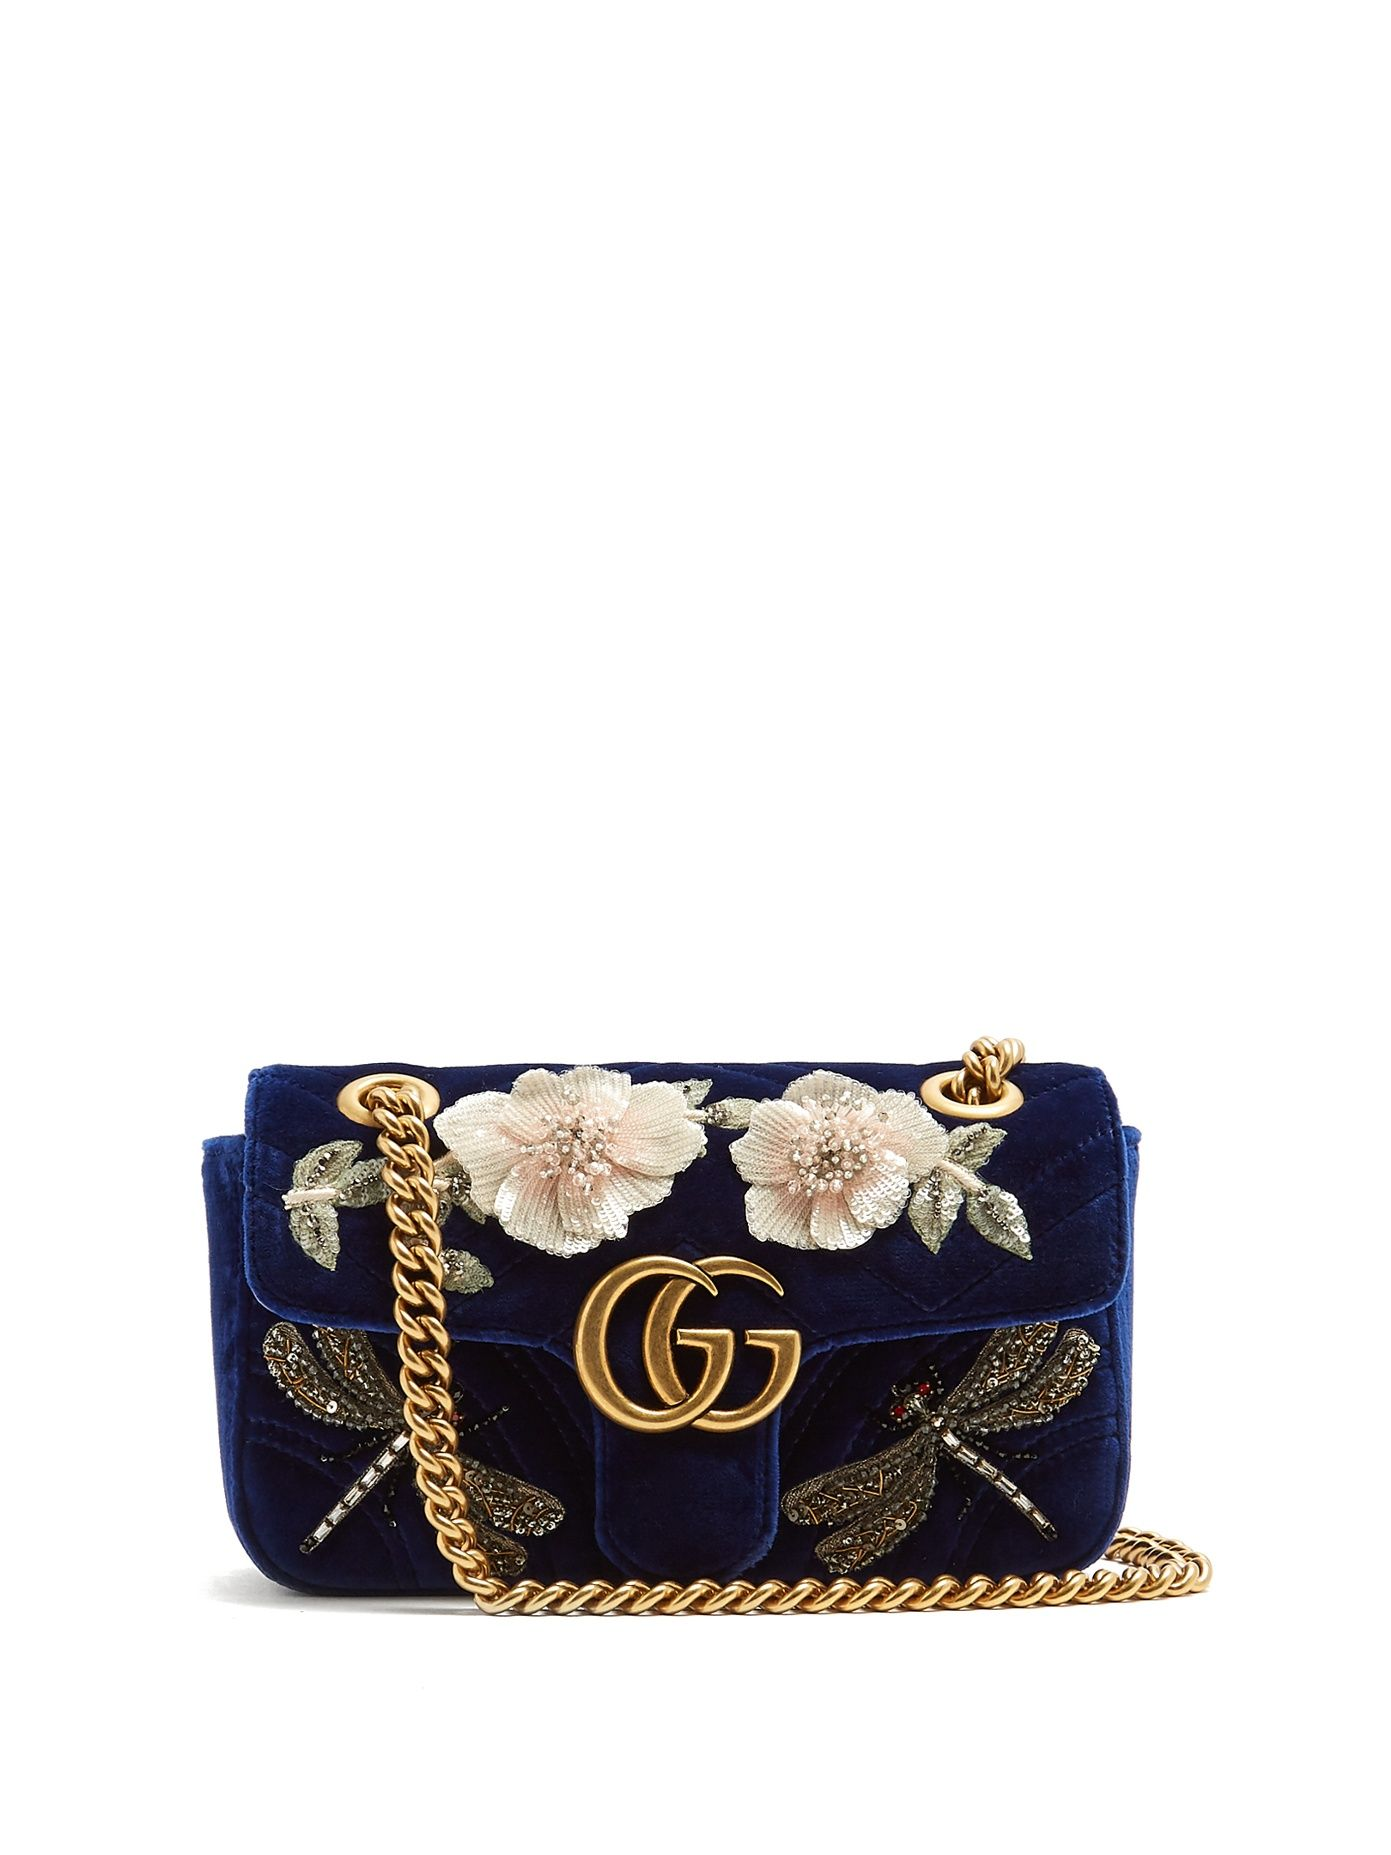 6fc536dc63e1 Gucci GG Marmont mini quilted-velvet cross-body bag- blue velvet with  embroidered dragonfly beaded detailing